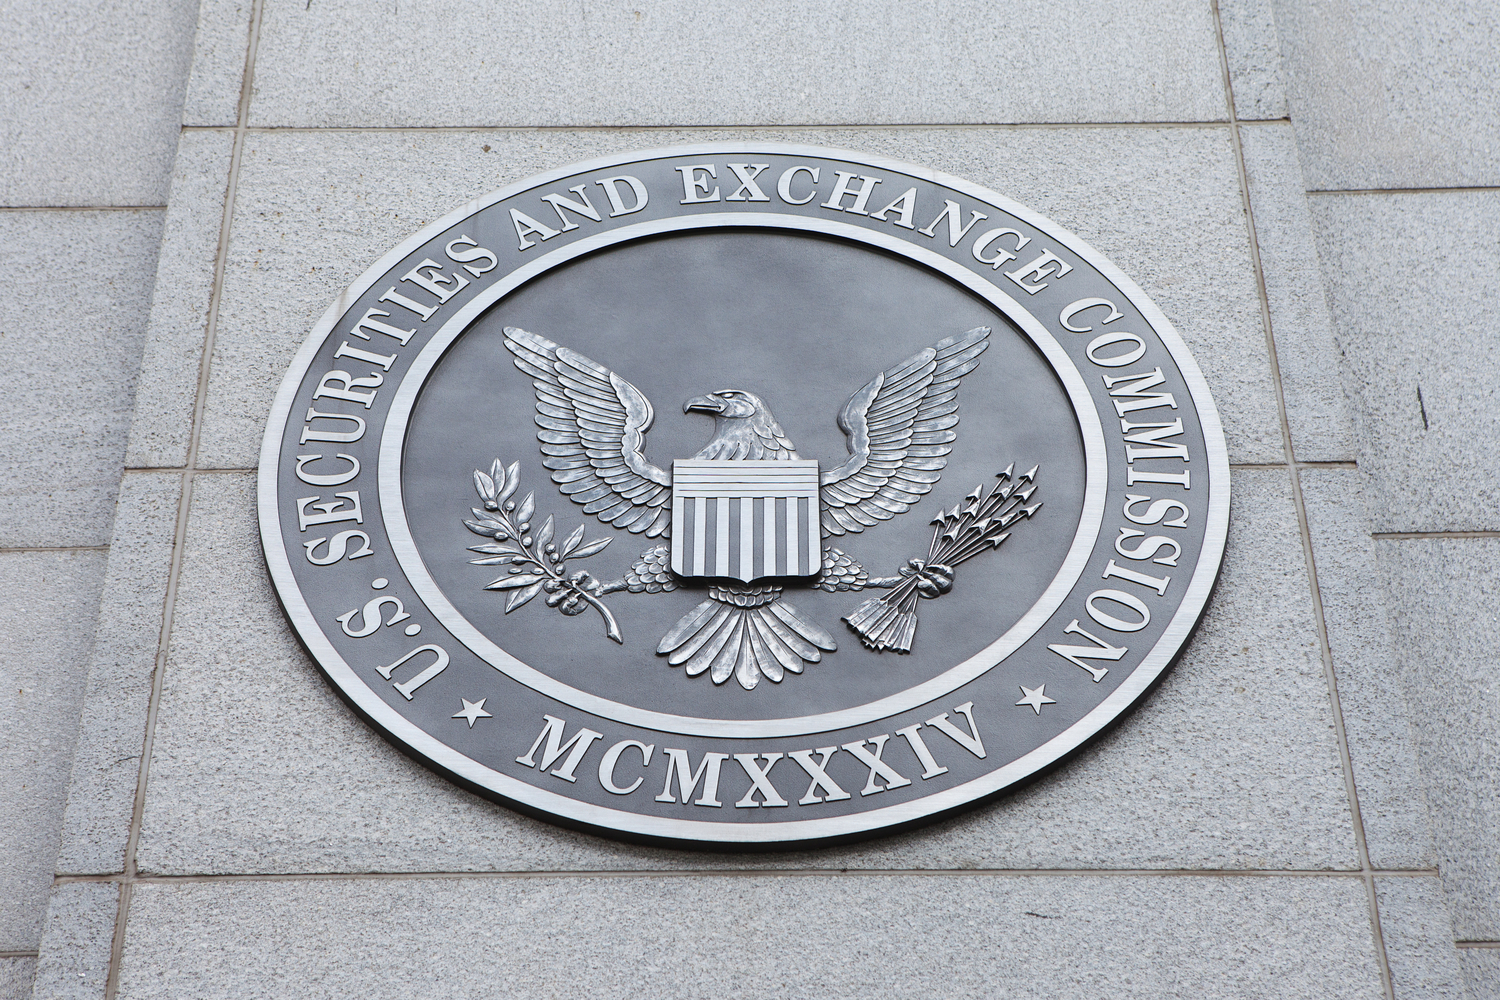 ETF Tied to Bitcoin Futures Withdrawn After SEC Staff Request